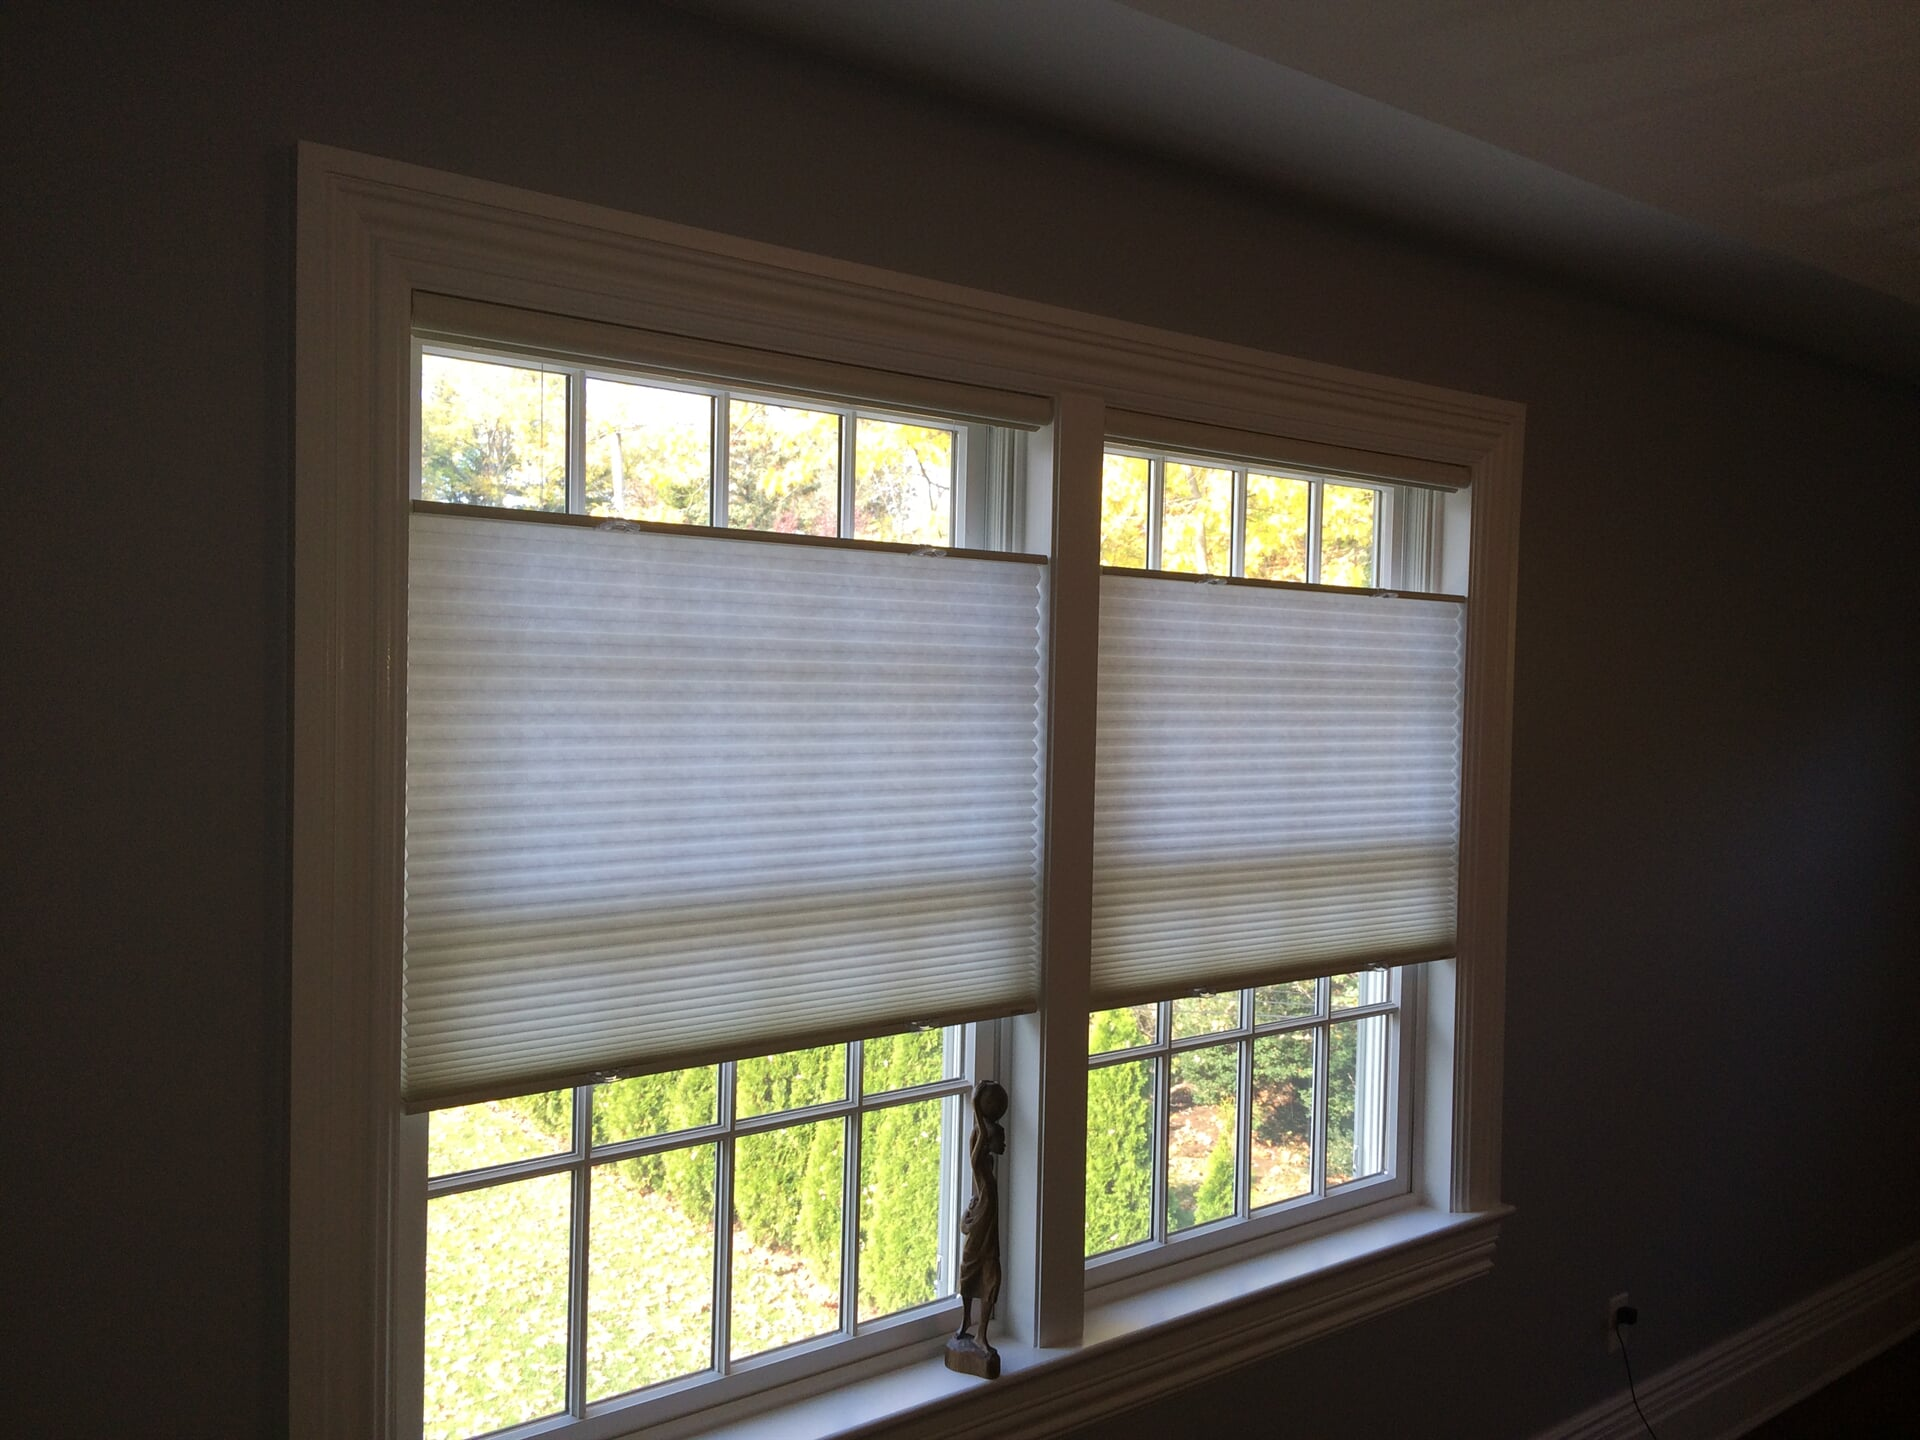 Window coverings in White Plains, NY from White Plains Carpets, Floors & Blinds